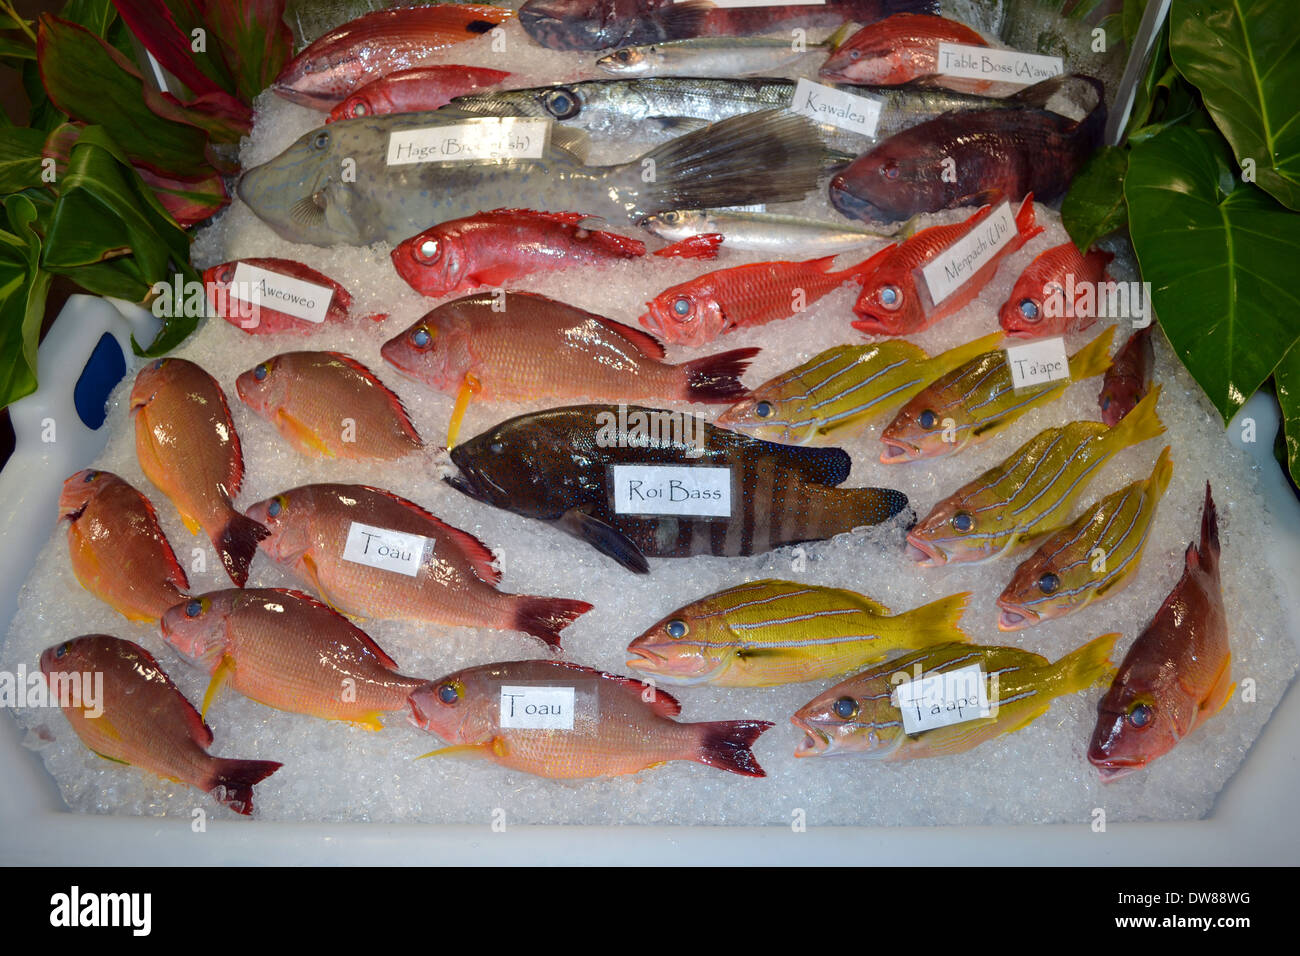 A variety of Hawaiian fishes on sale, Hawaii Seafood Festival, Oahu, Hawaii, USA - Stock Image